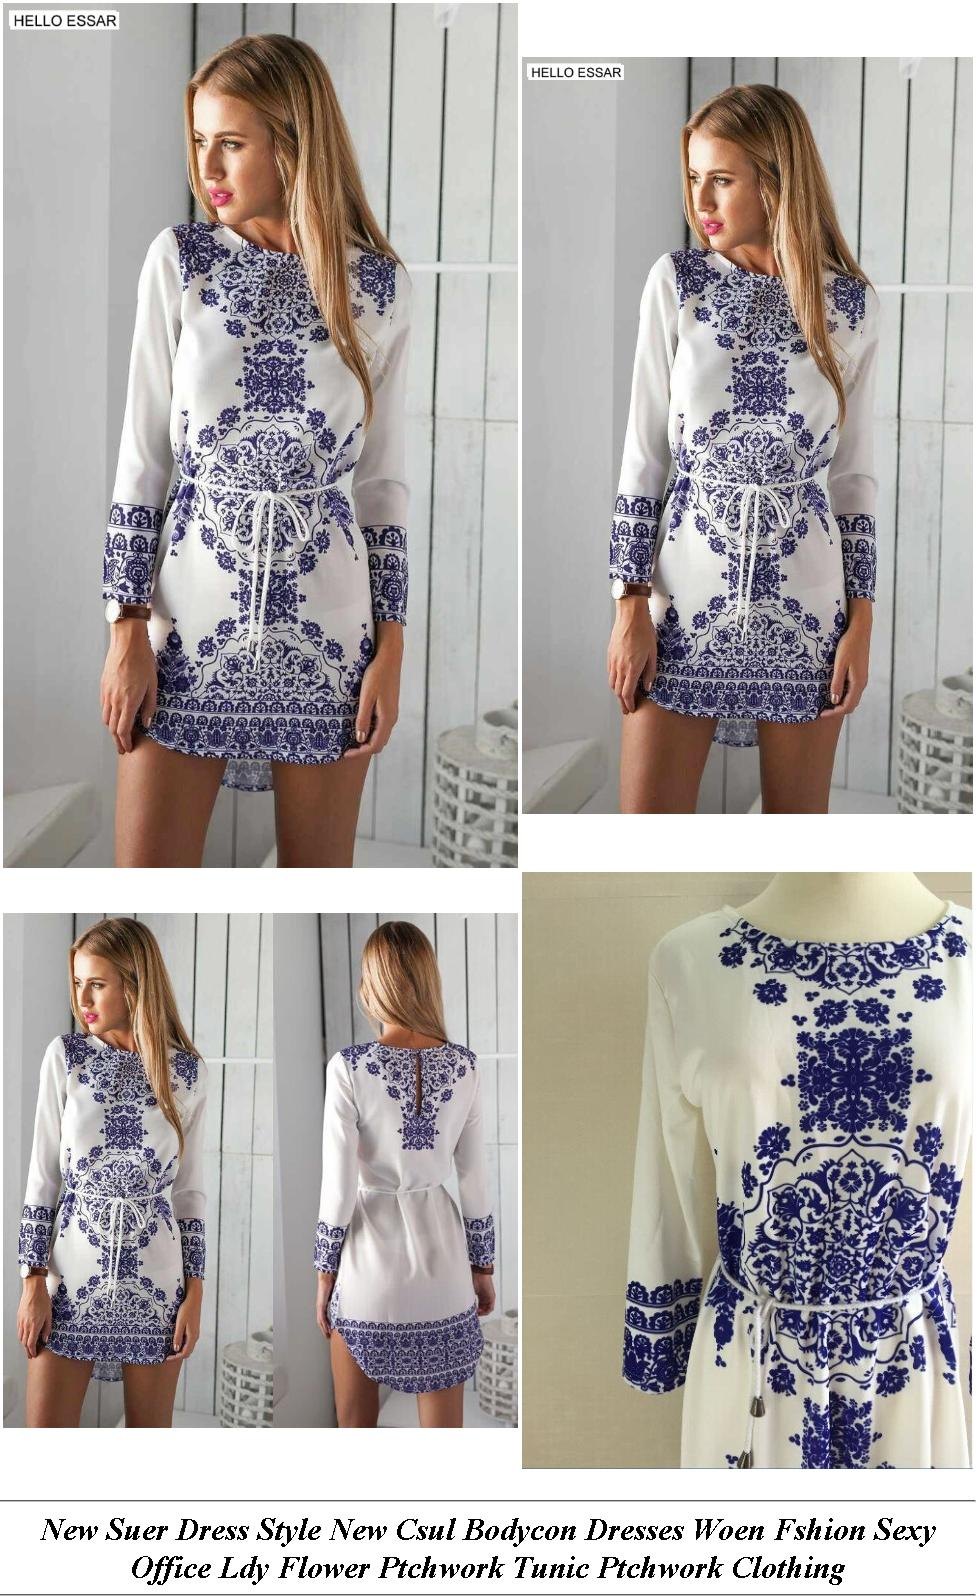 White Dresses For Women - Sale And Clearance - Dress Sale - Cheap Clothes